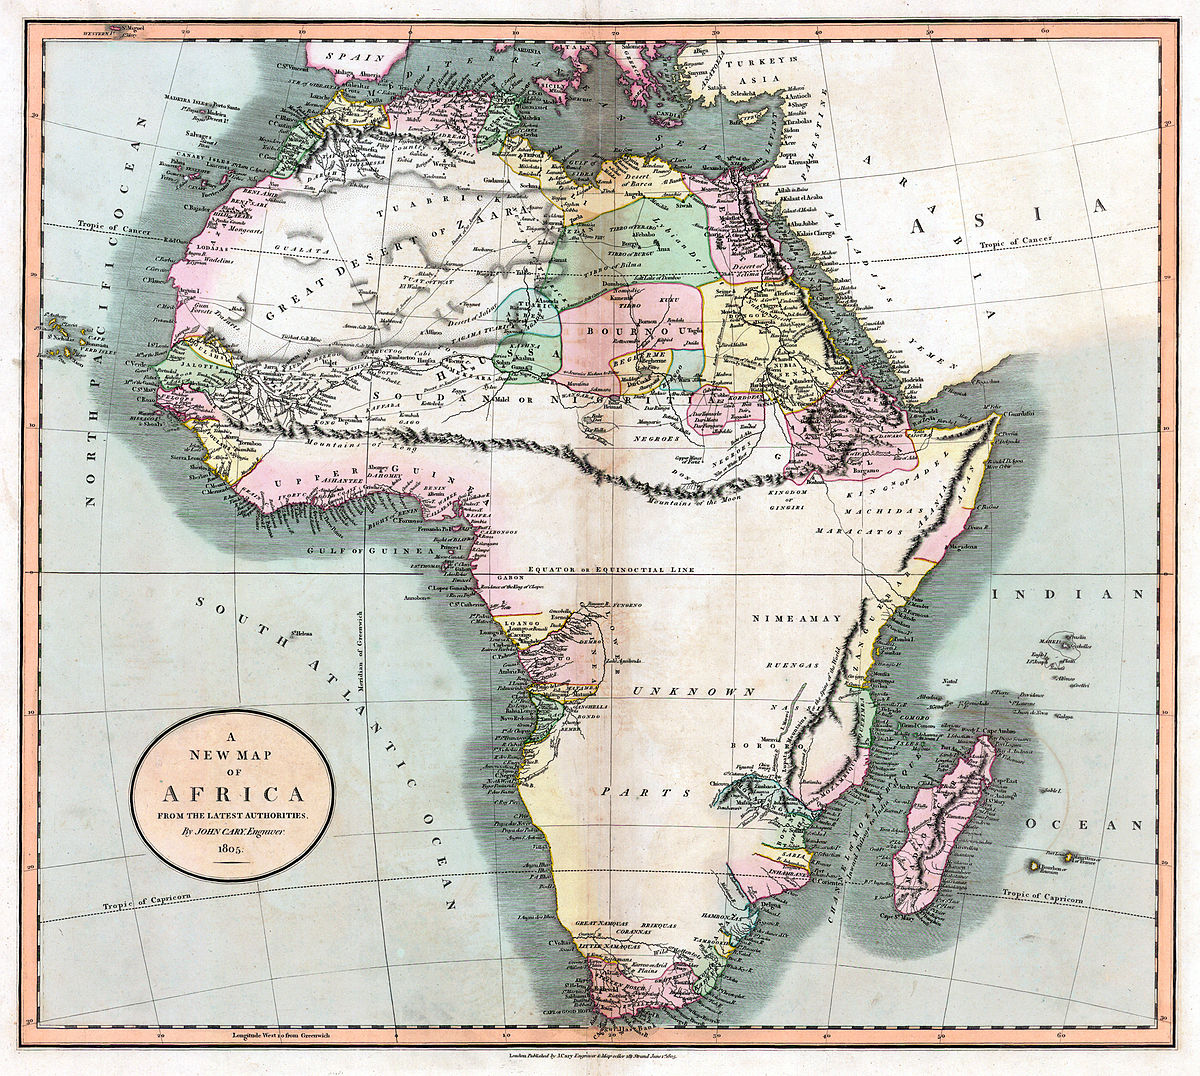 map of mountain ranges in africa Mountains Of Kong Wikipedia map of mountain ranges in africa